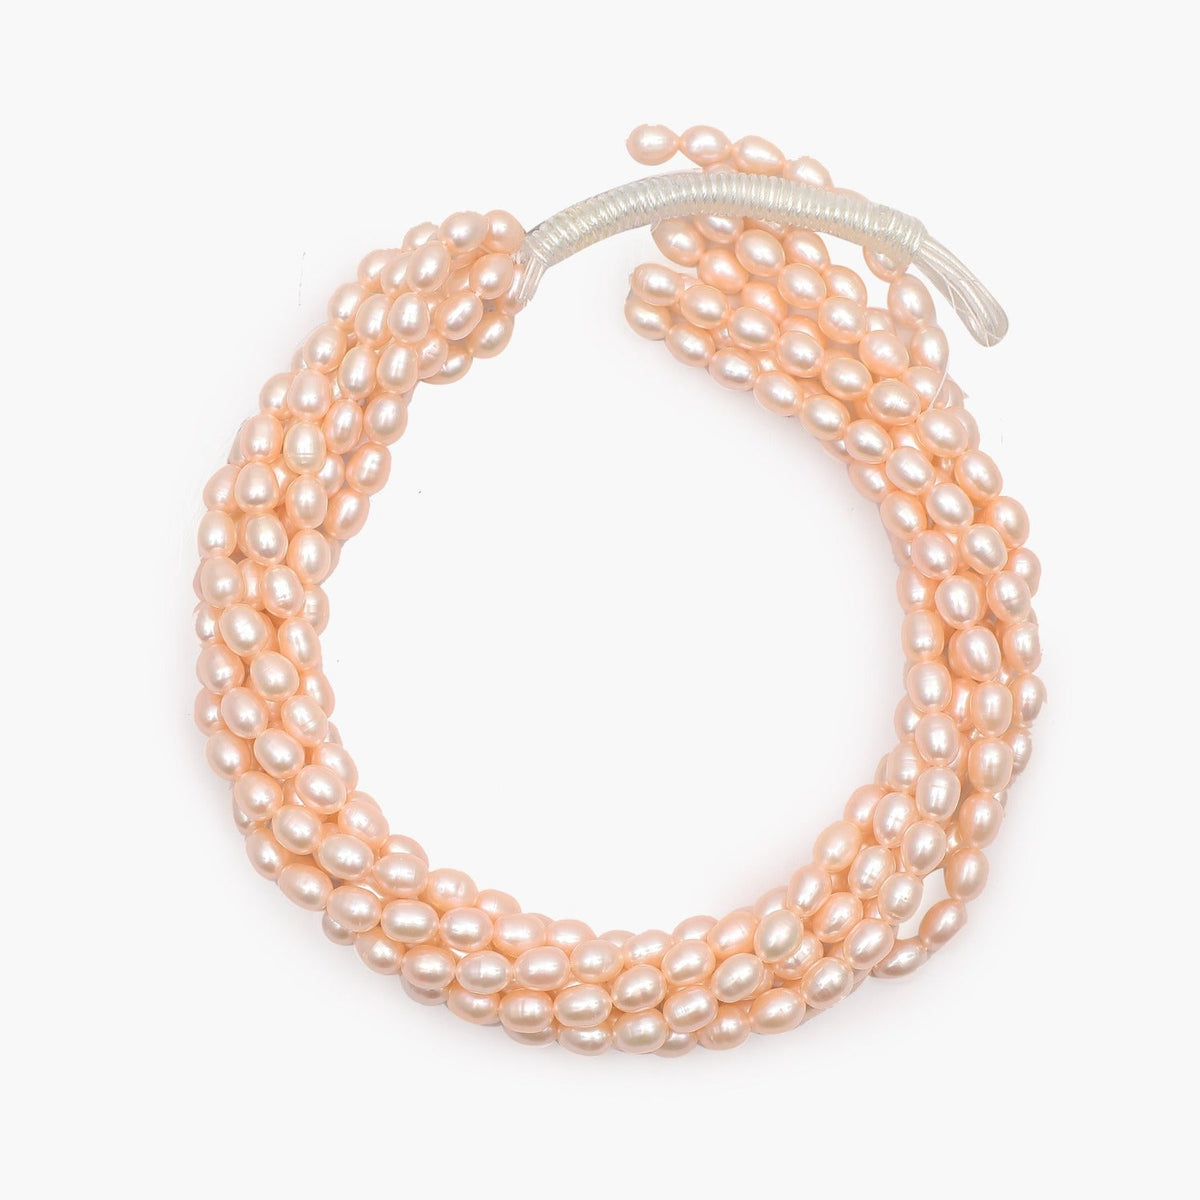 Freshwater Peach Round Pearls 8-10mm- Sold Per Strand